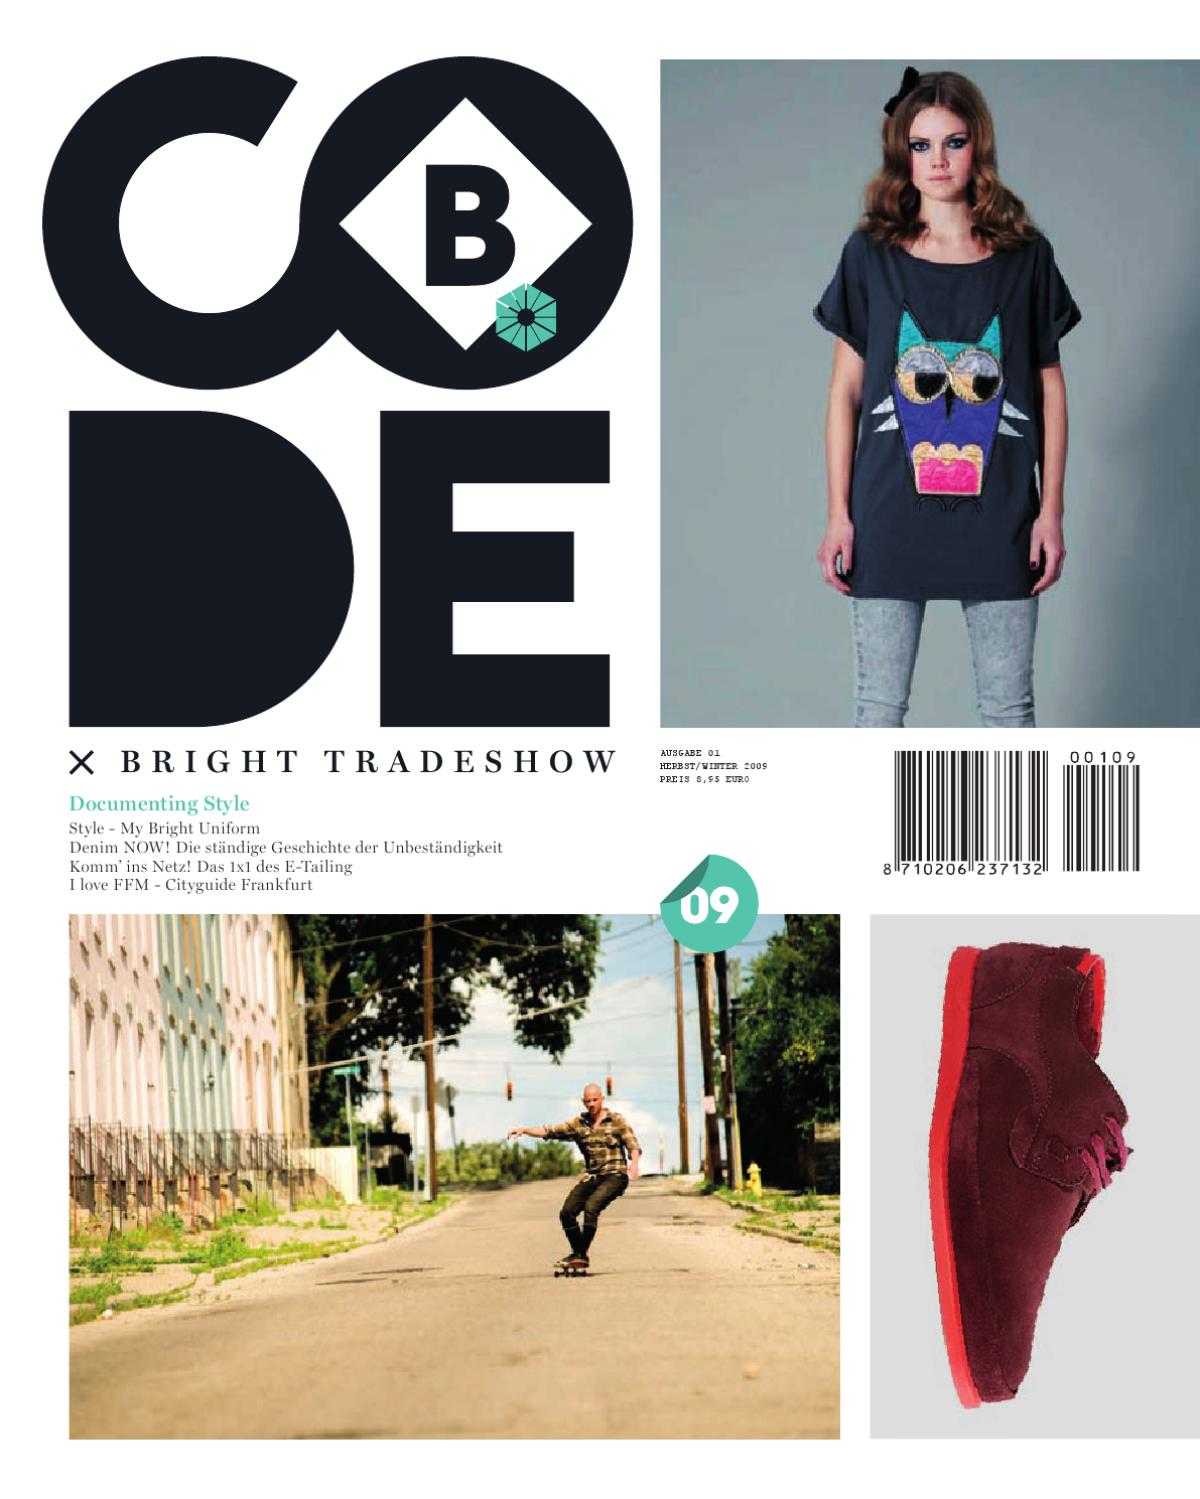 Supertroopers by CODE CV issuu xBright thdsrQ